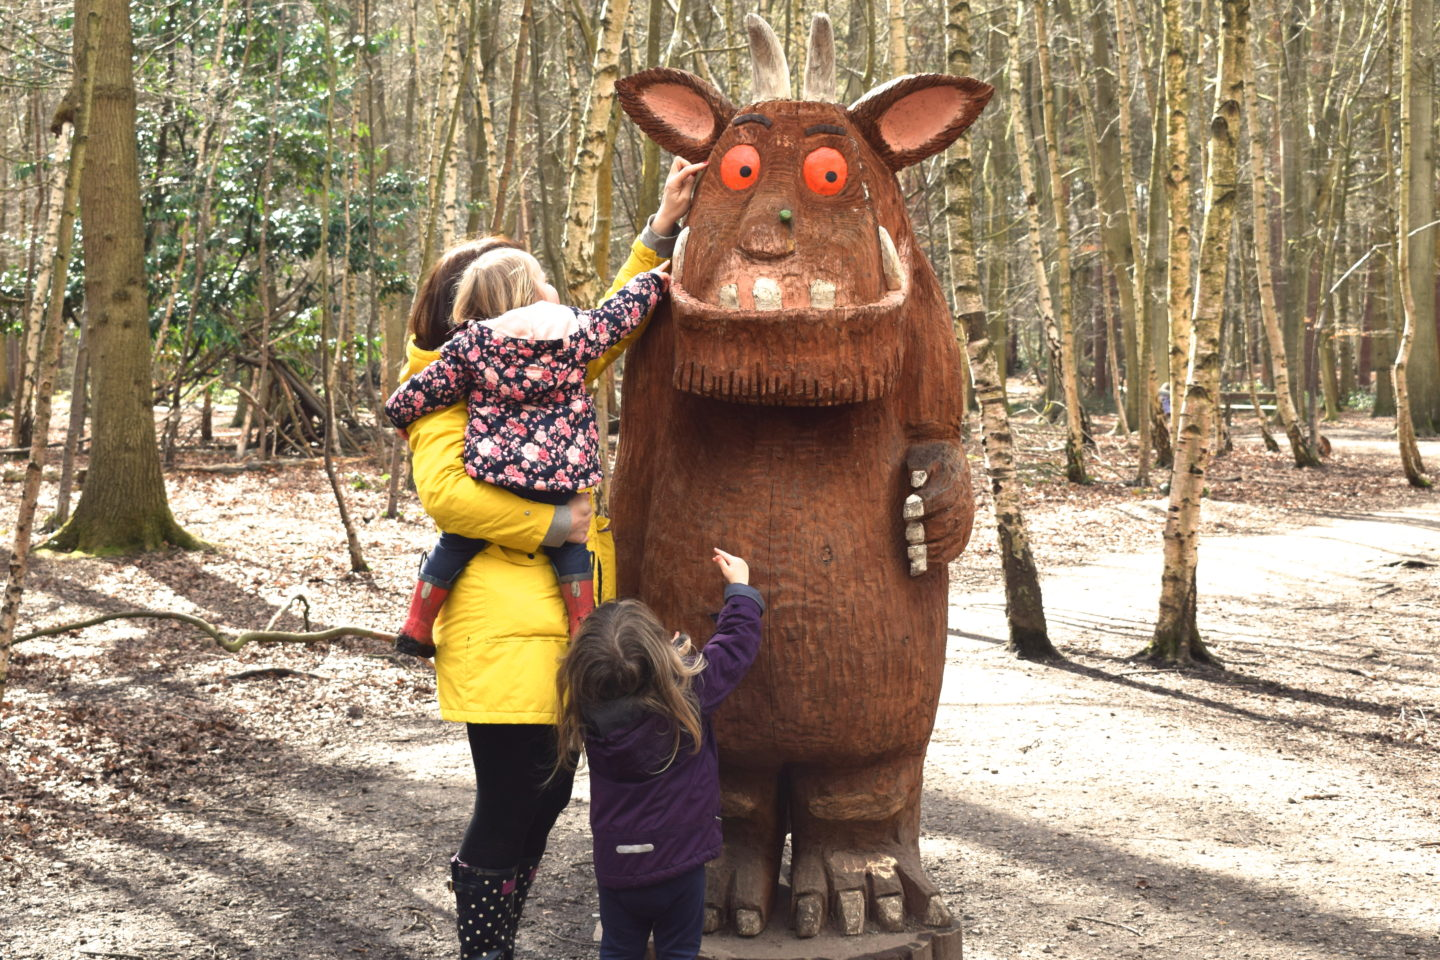 The Gruffalo Trail, Essex, The Gruffalo with mother and two children